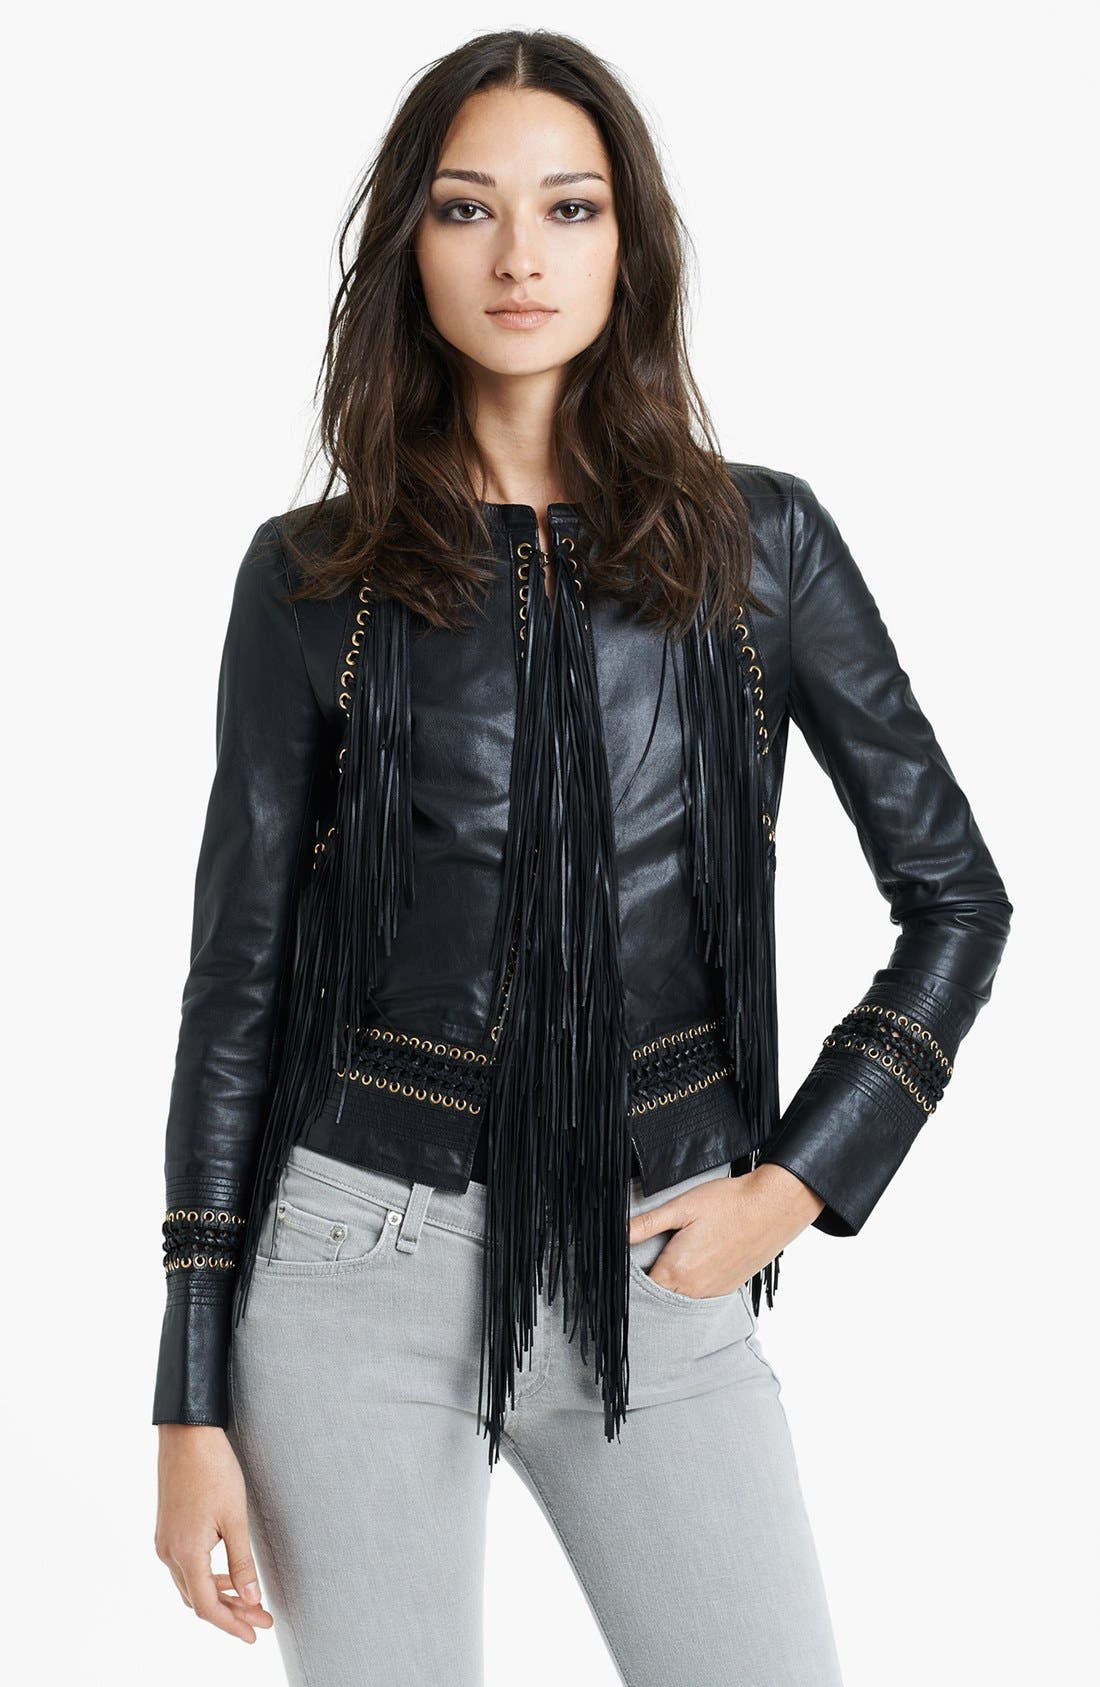 Alternate Image 1 Selected - Roberto Cavalli Fringe Detail Leather Jacket